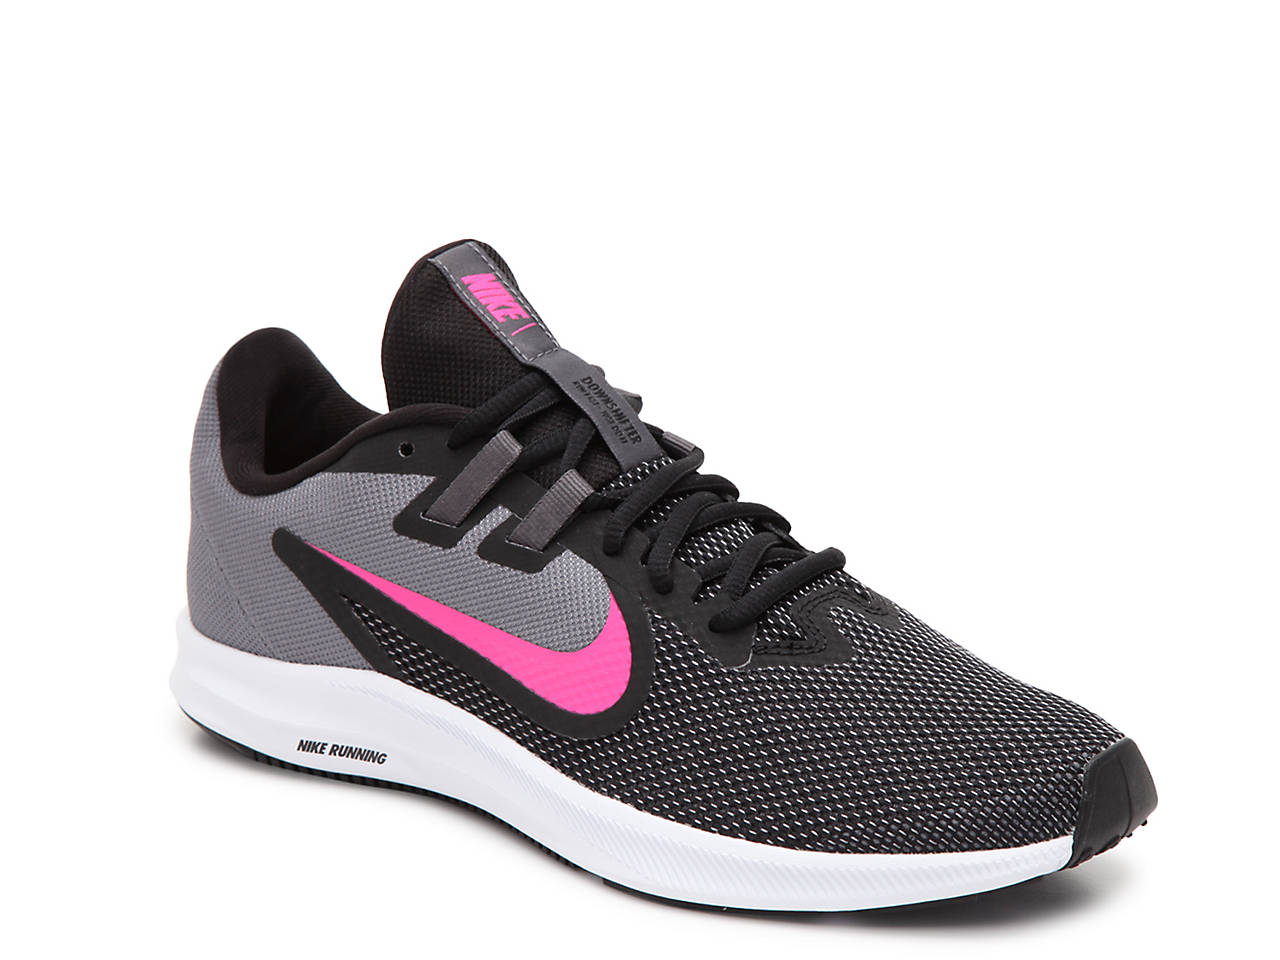 best cheap 502a5 8ff38 Nike. Downshifter 9 Lightweight Running Shoe - Women s